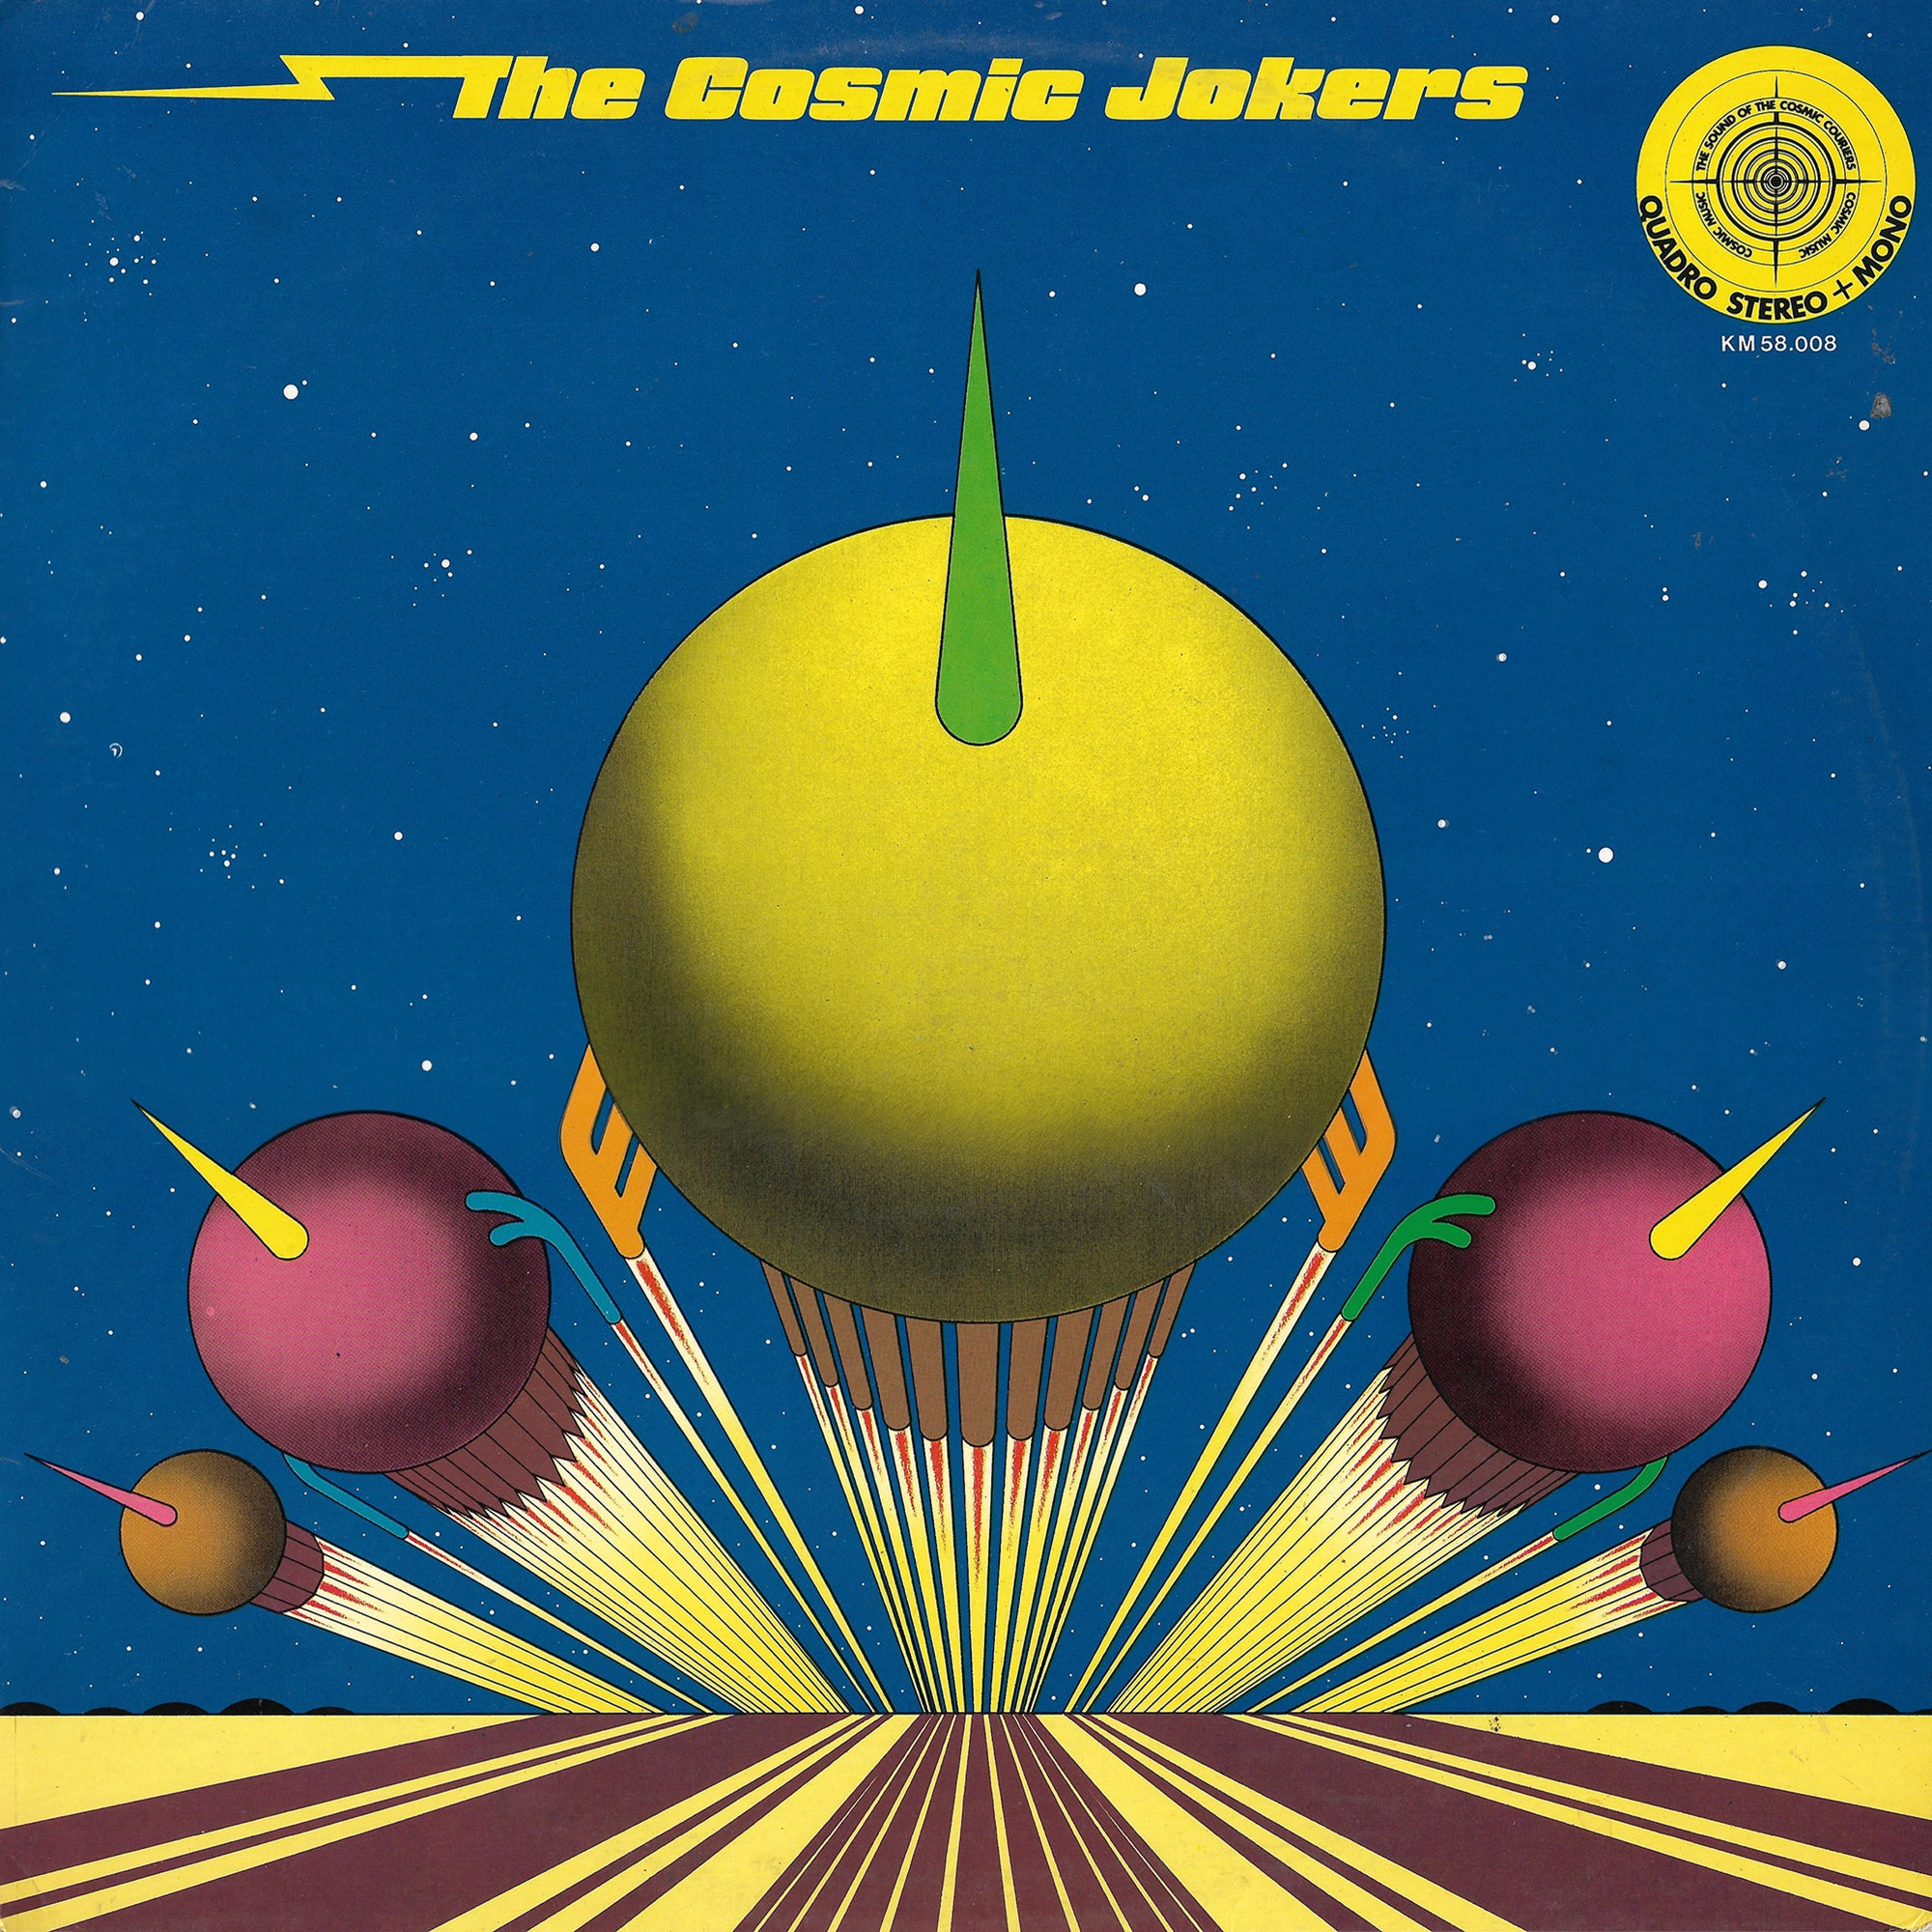 The Cosmic Jokers - The Cosmic Jokers